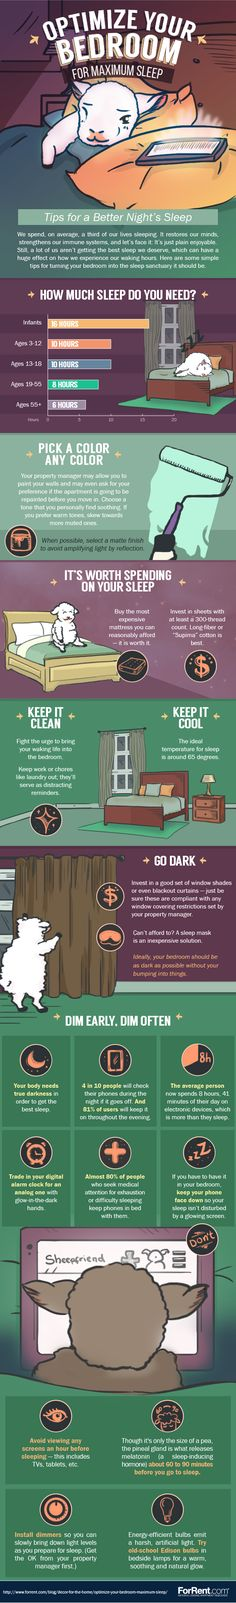 Psychology infographic & Advice Optimize Your Bedroom for Maximum Sleep. Image Description Optimize Your Bedroom for Maximum Sleep Health And Beauty, Health And Wellness, Health Tips, Health Fitness, Sleep Help, Good Night Sleep, How To Sleep, Can't Sleep, Mental Training